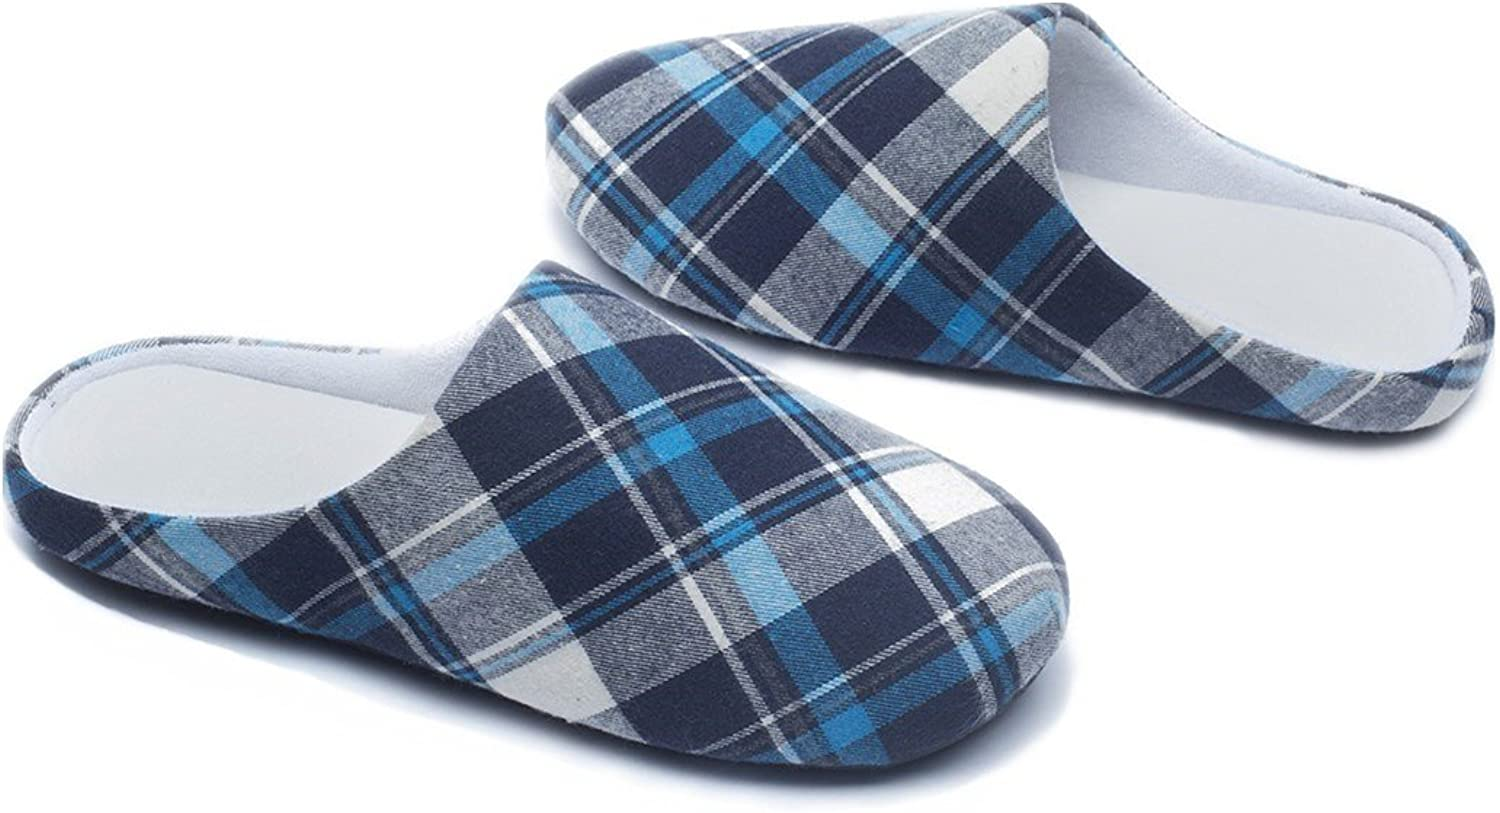 Ofoot Womens Mens Plaid Arch Support House Slippers,Cozy Furry Lining Memory Foam,Anti-Skid Flats(5.5-6.5 B(M) US, bluee)